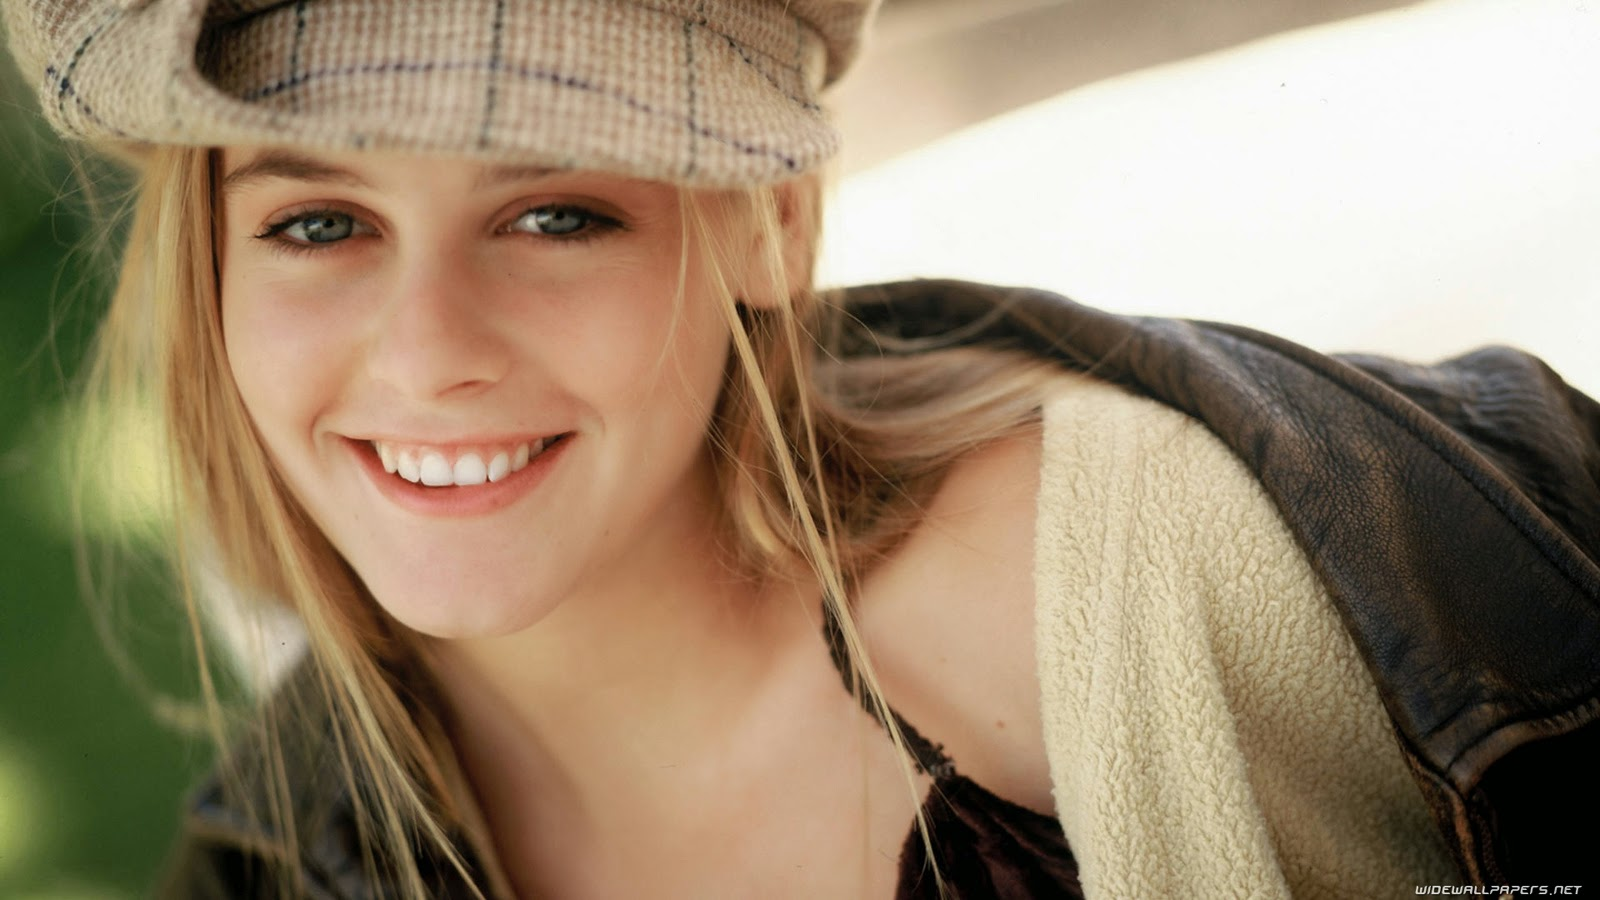 Wellcome to bollywood hd wallpapers alicia silverstone hollywood actress full hd wallpaers - Hollywood actress full hd wallpaper ...